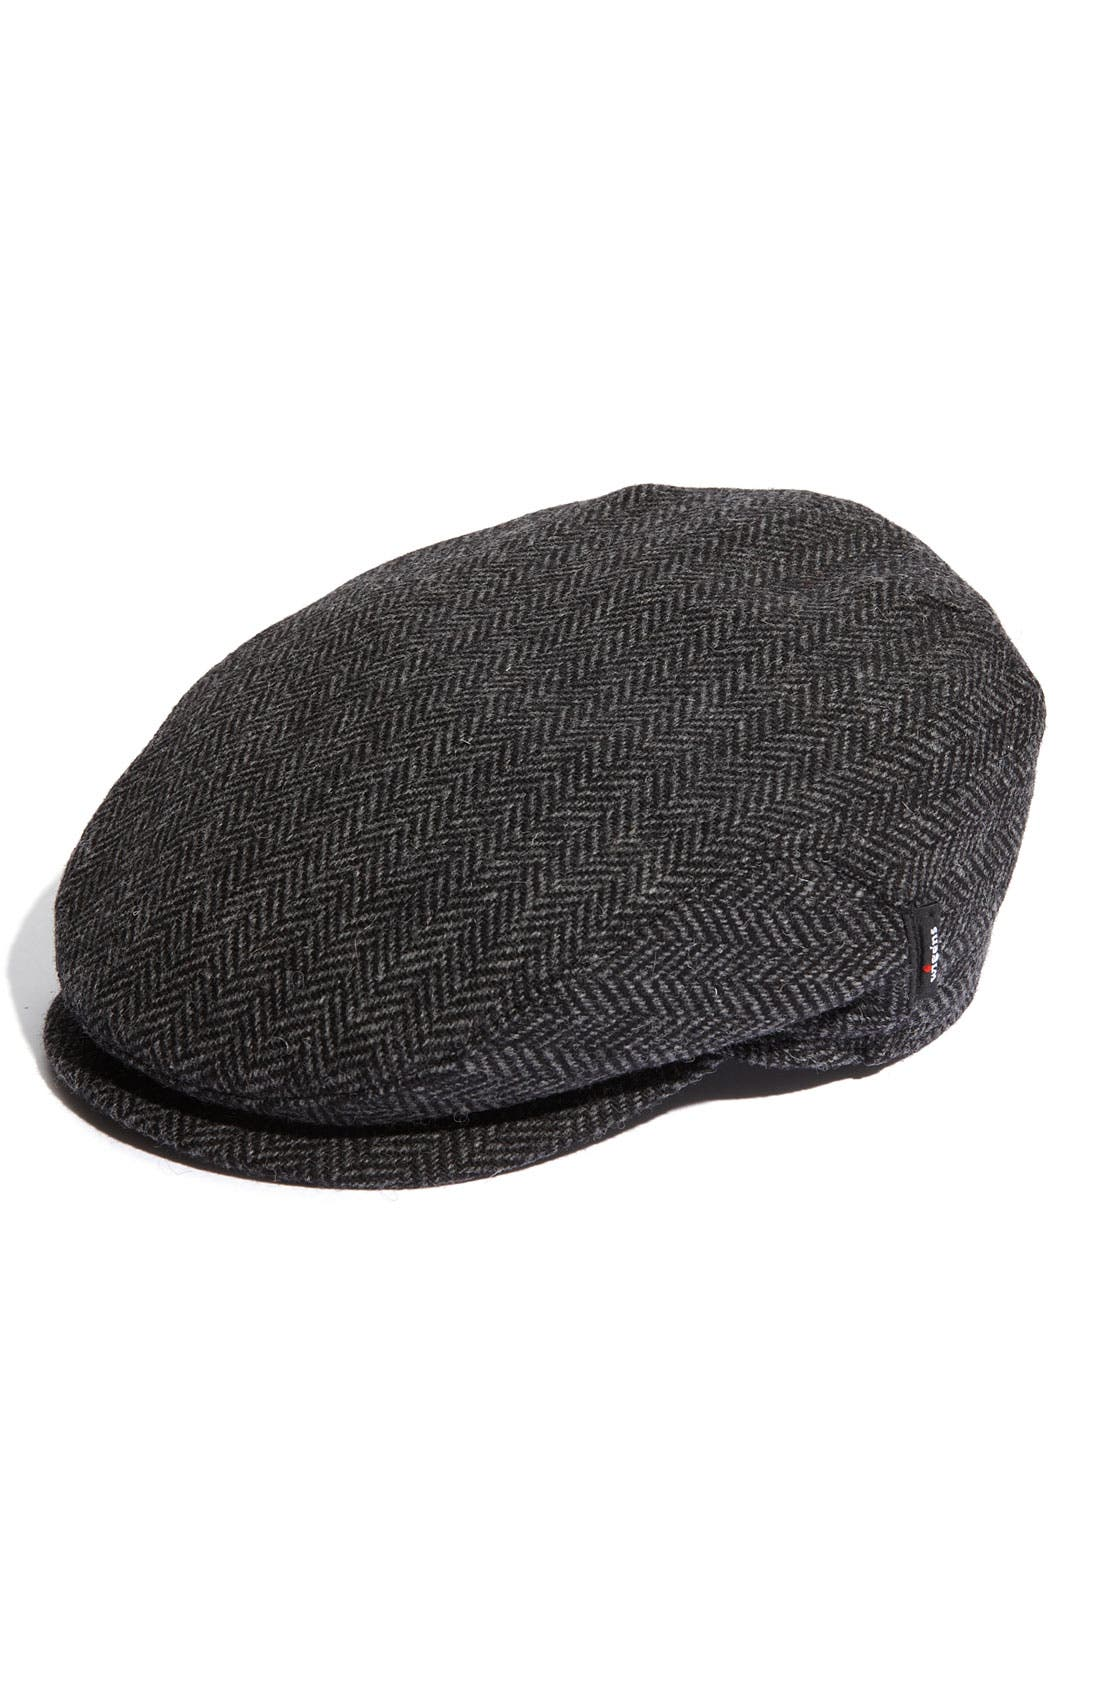 Alternate Image 1 Selected - Wigens Herringbone Cap